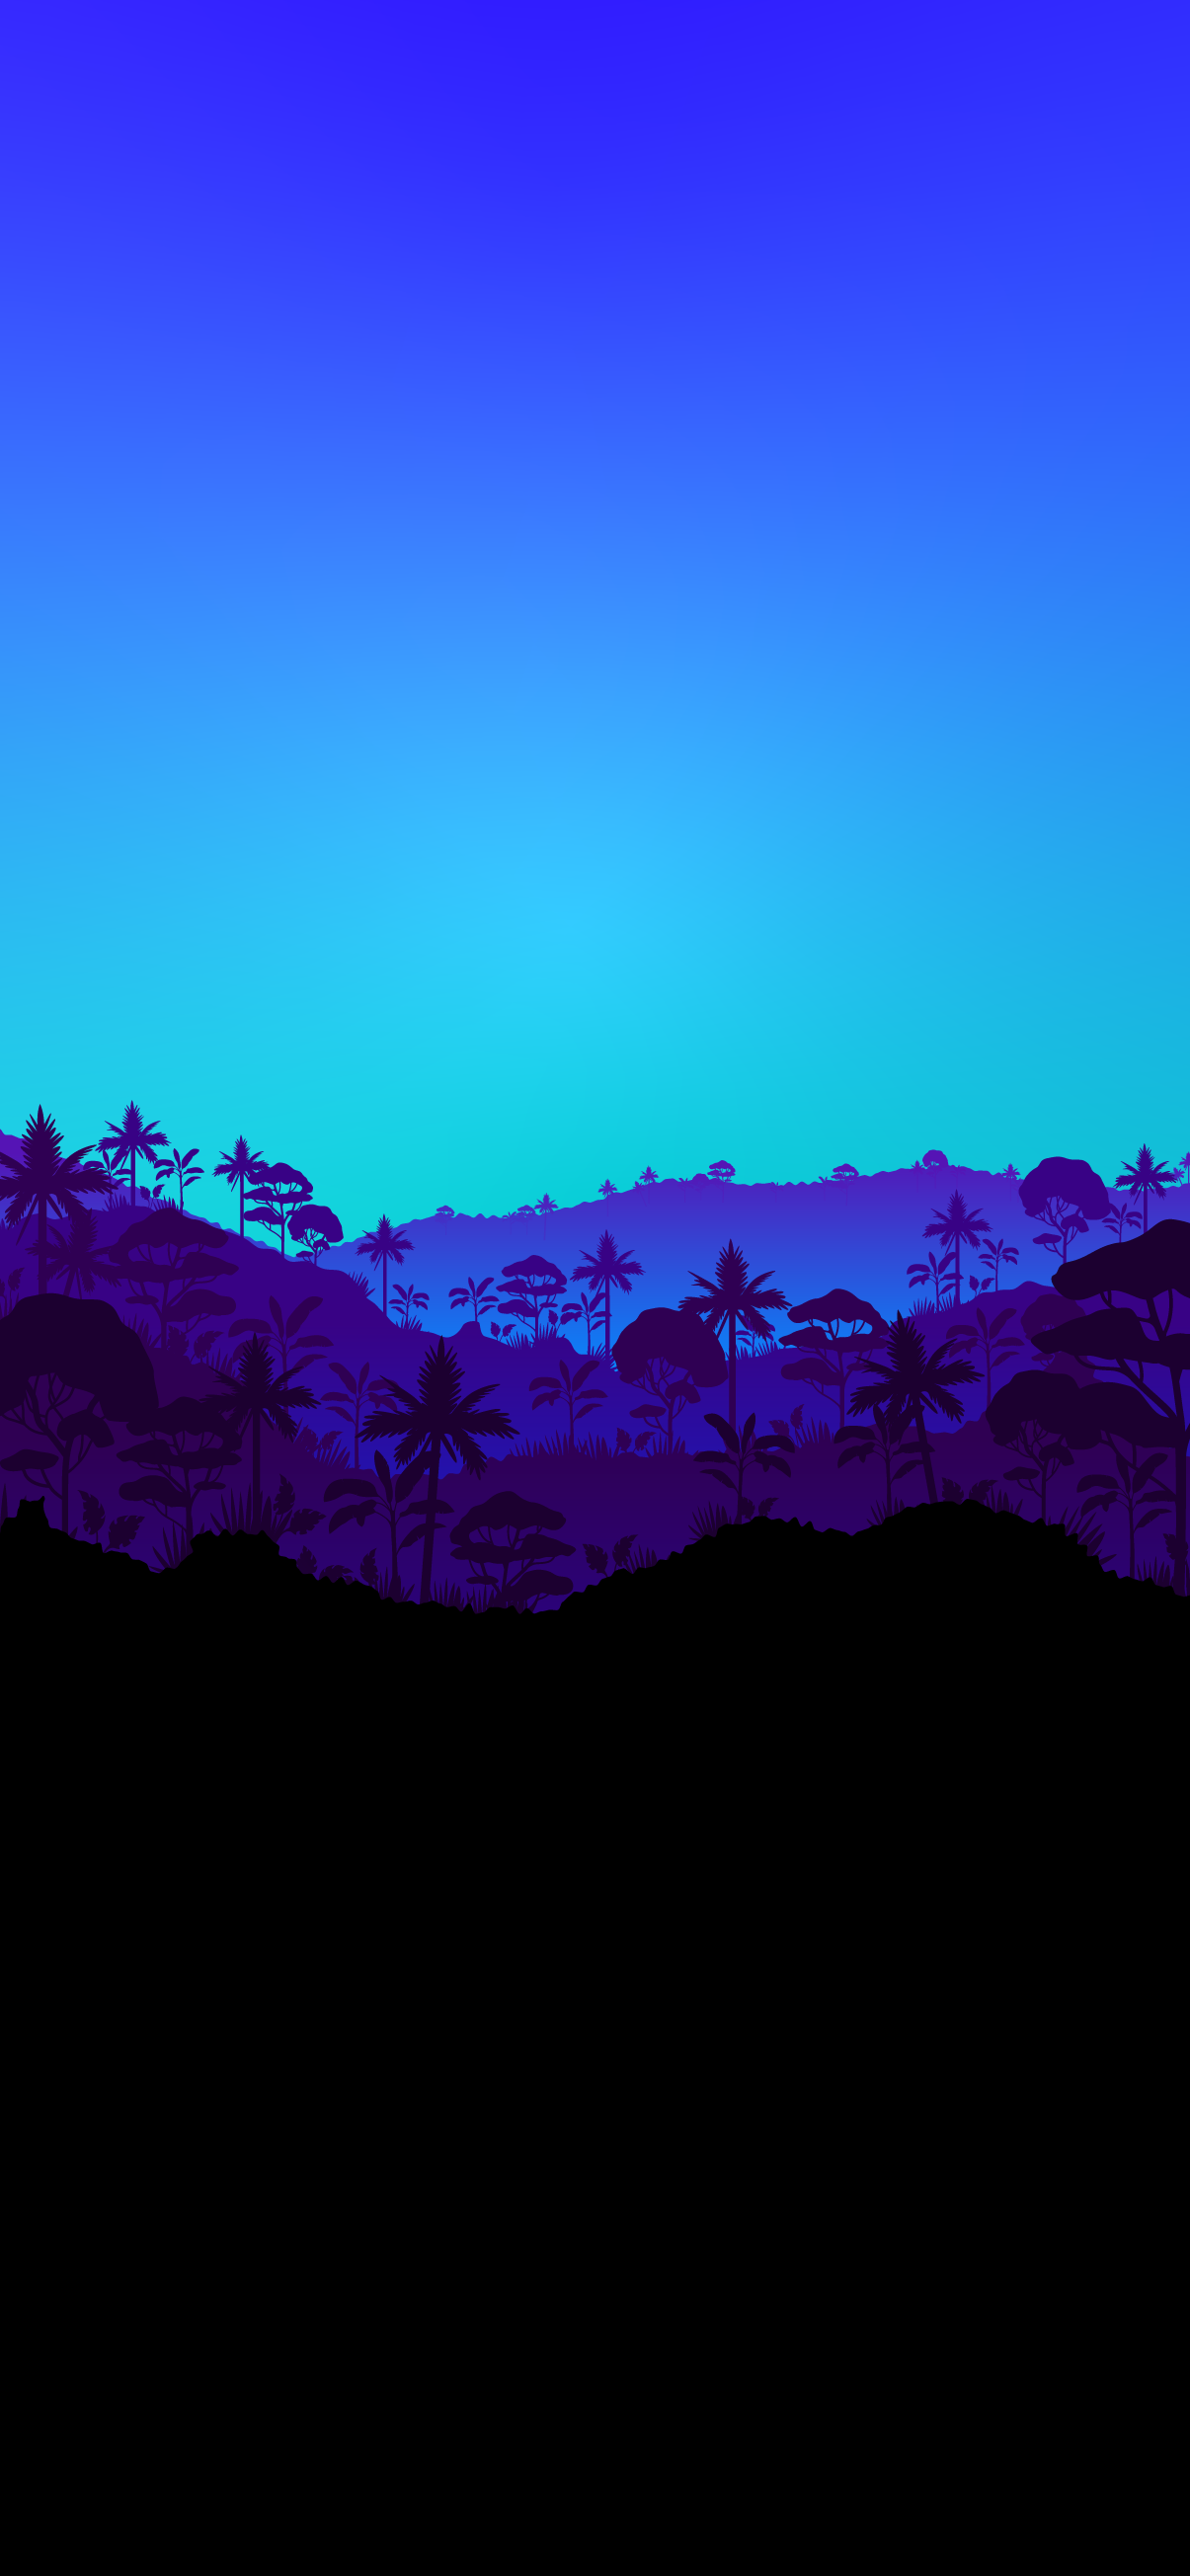 Tropical forest landscape with dense forest